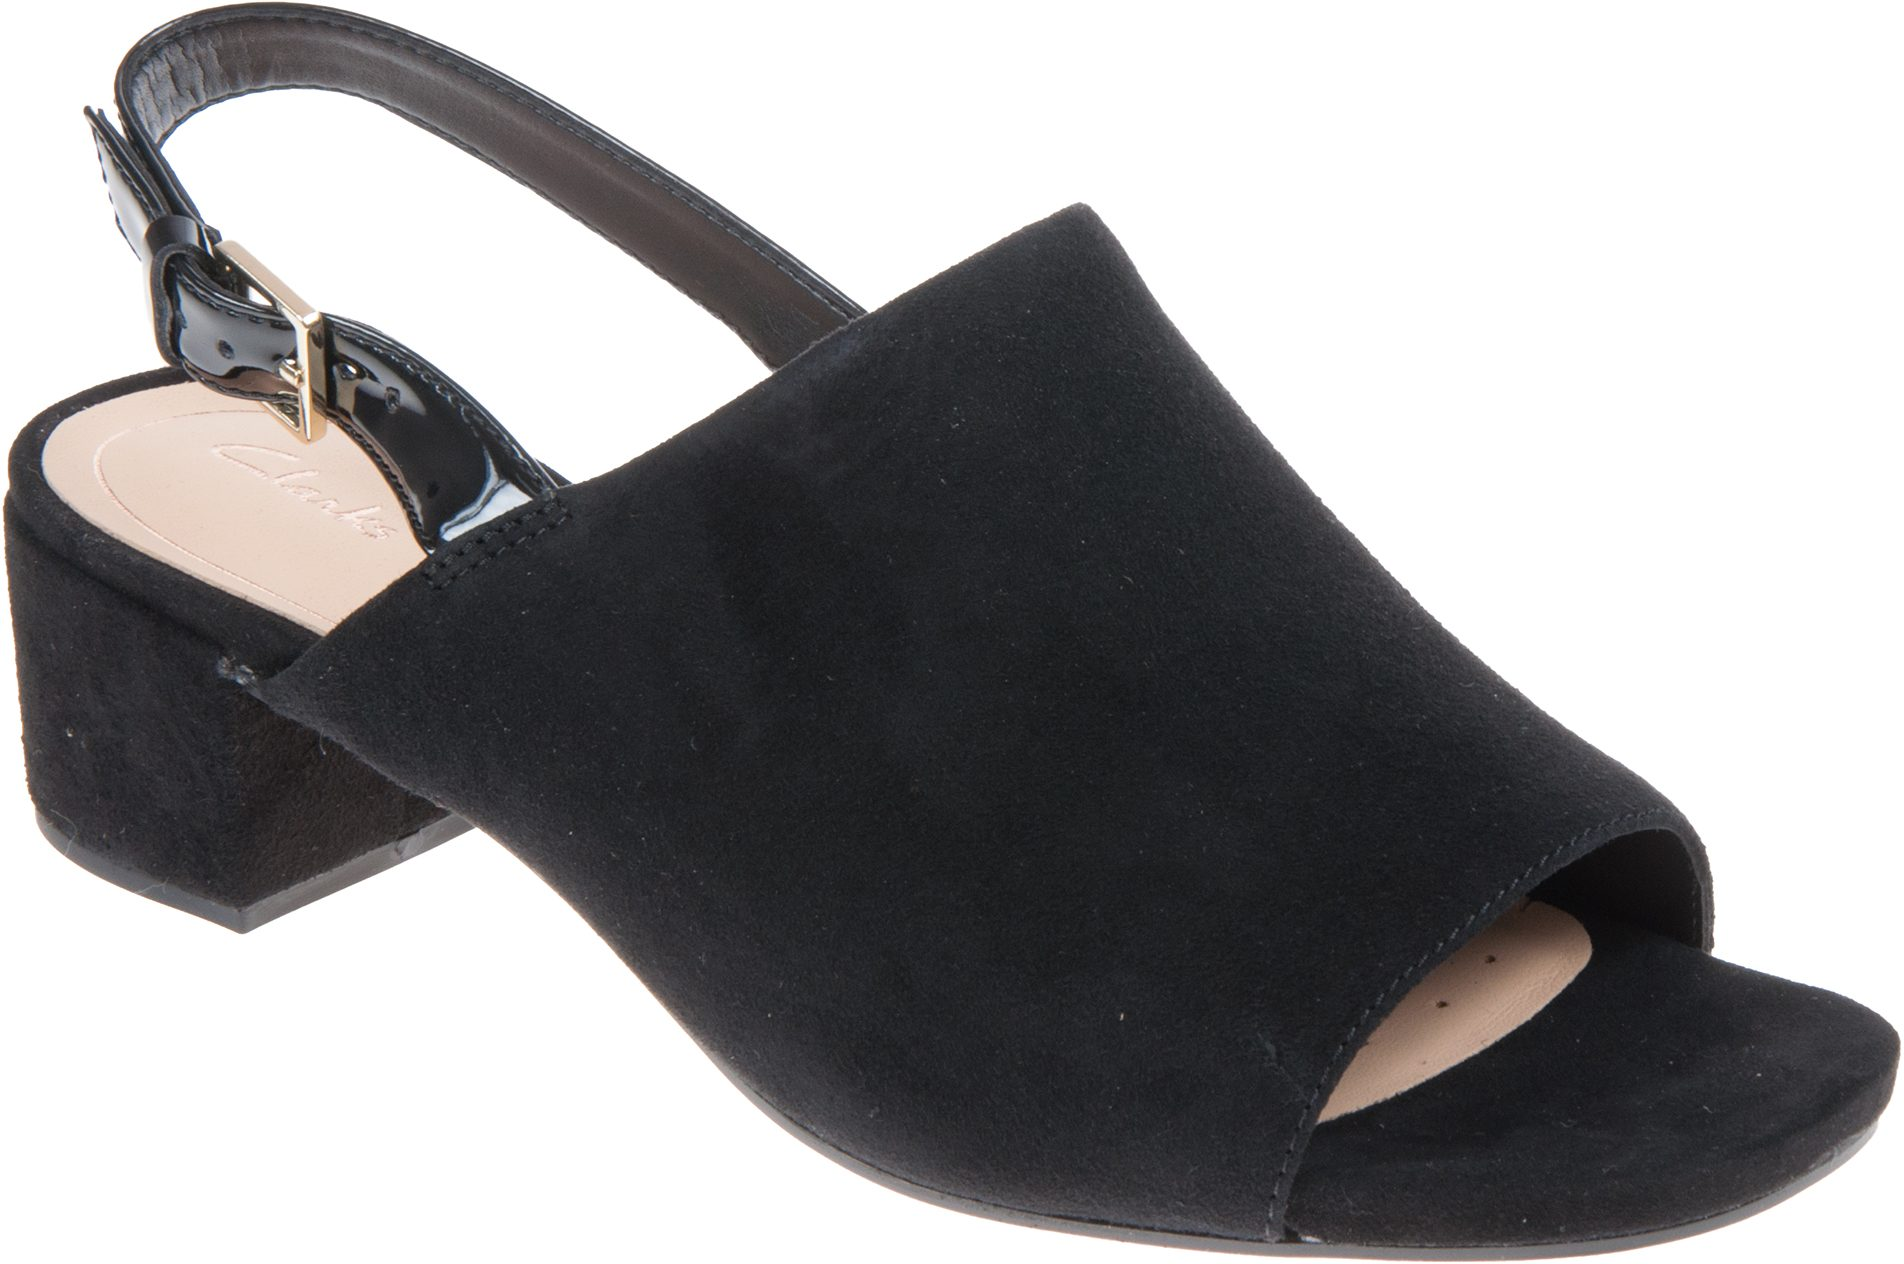 Humphries Sandals Orabella Clarks Black 26131187 Full Ivy Suede 0qF6aY